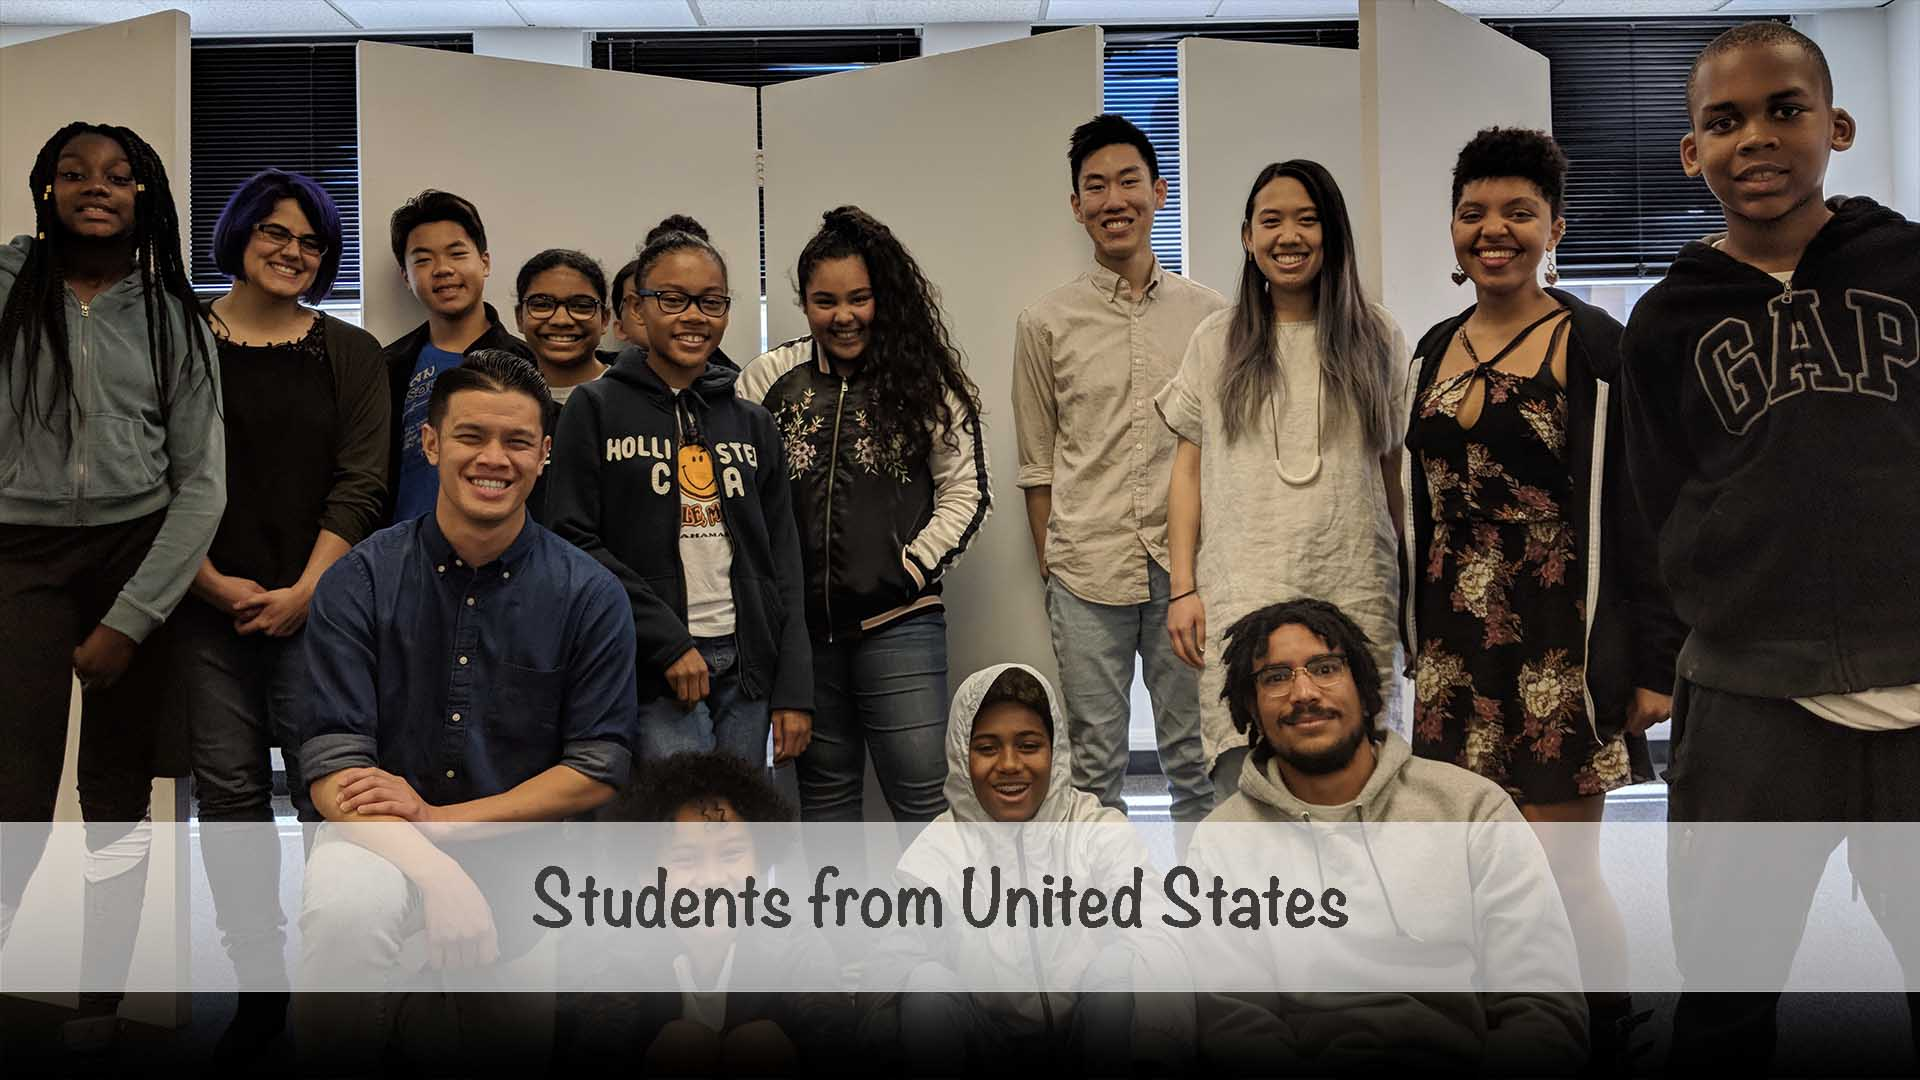 Storyhive for Students from the United States